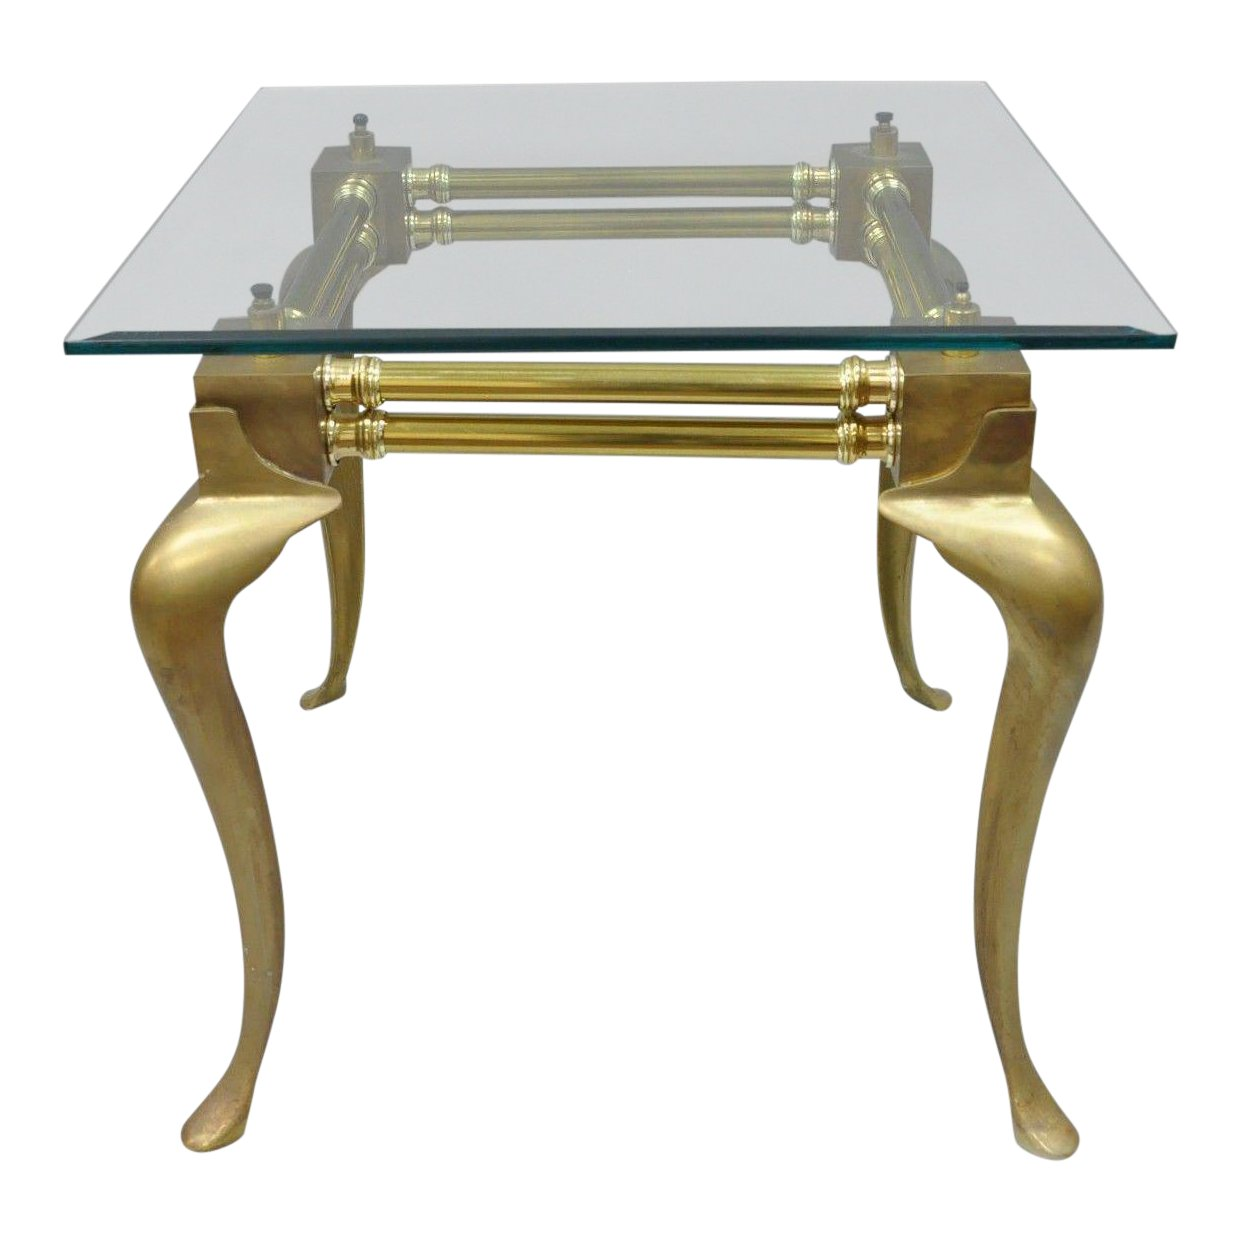 vintage brass glass queen anne accent table chairish and antique small decorative side tables long thin white gold lamp clear coffee gaming dock shades light coupon dining room